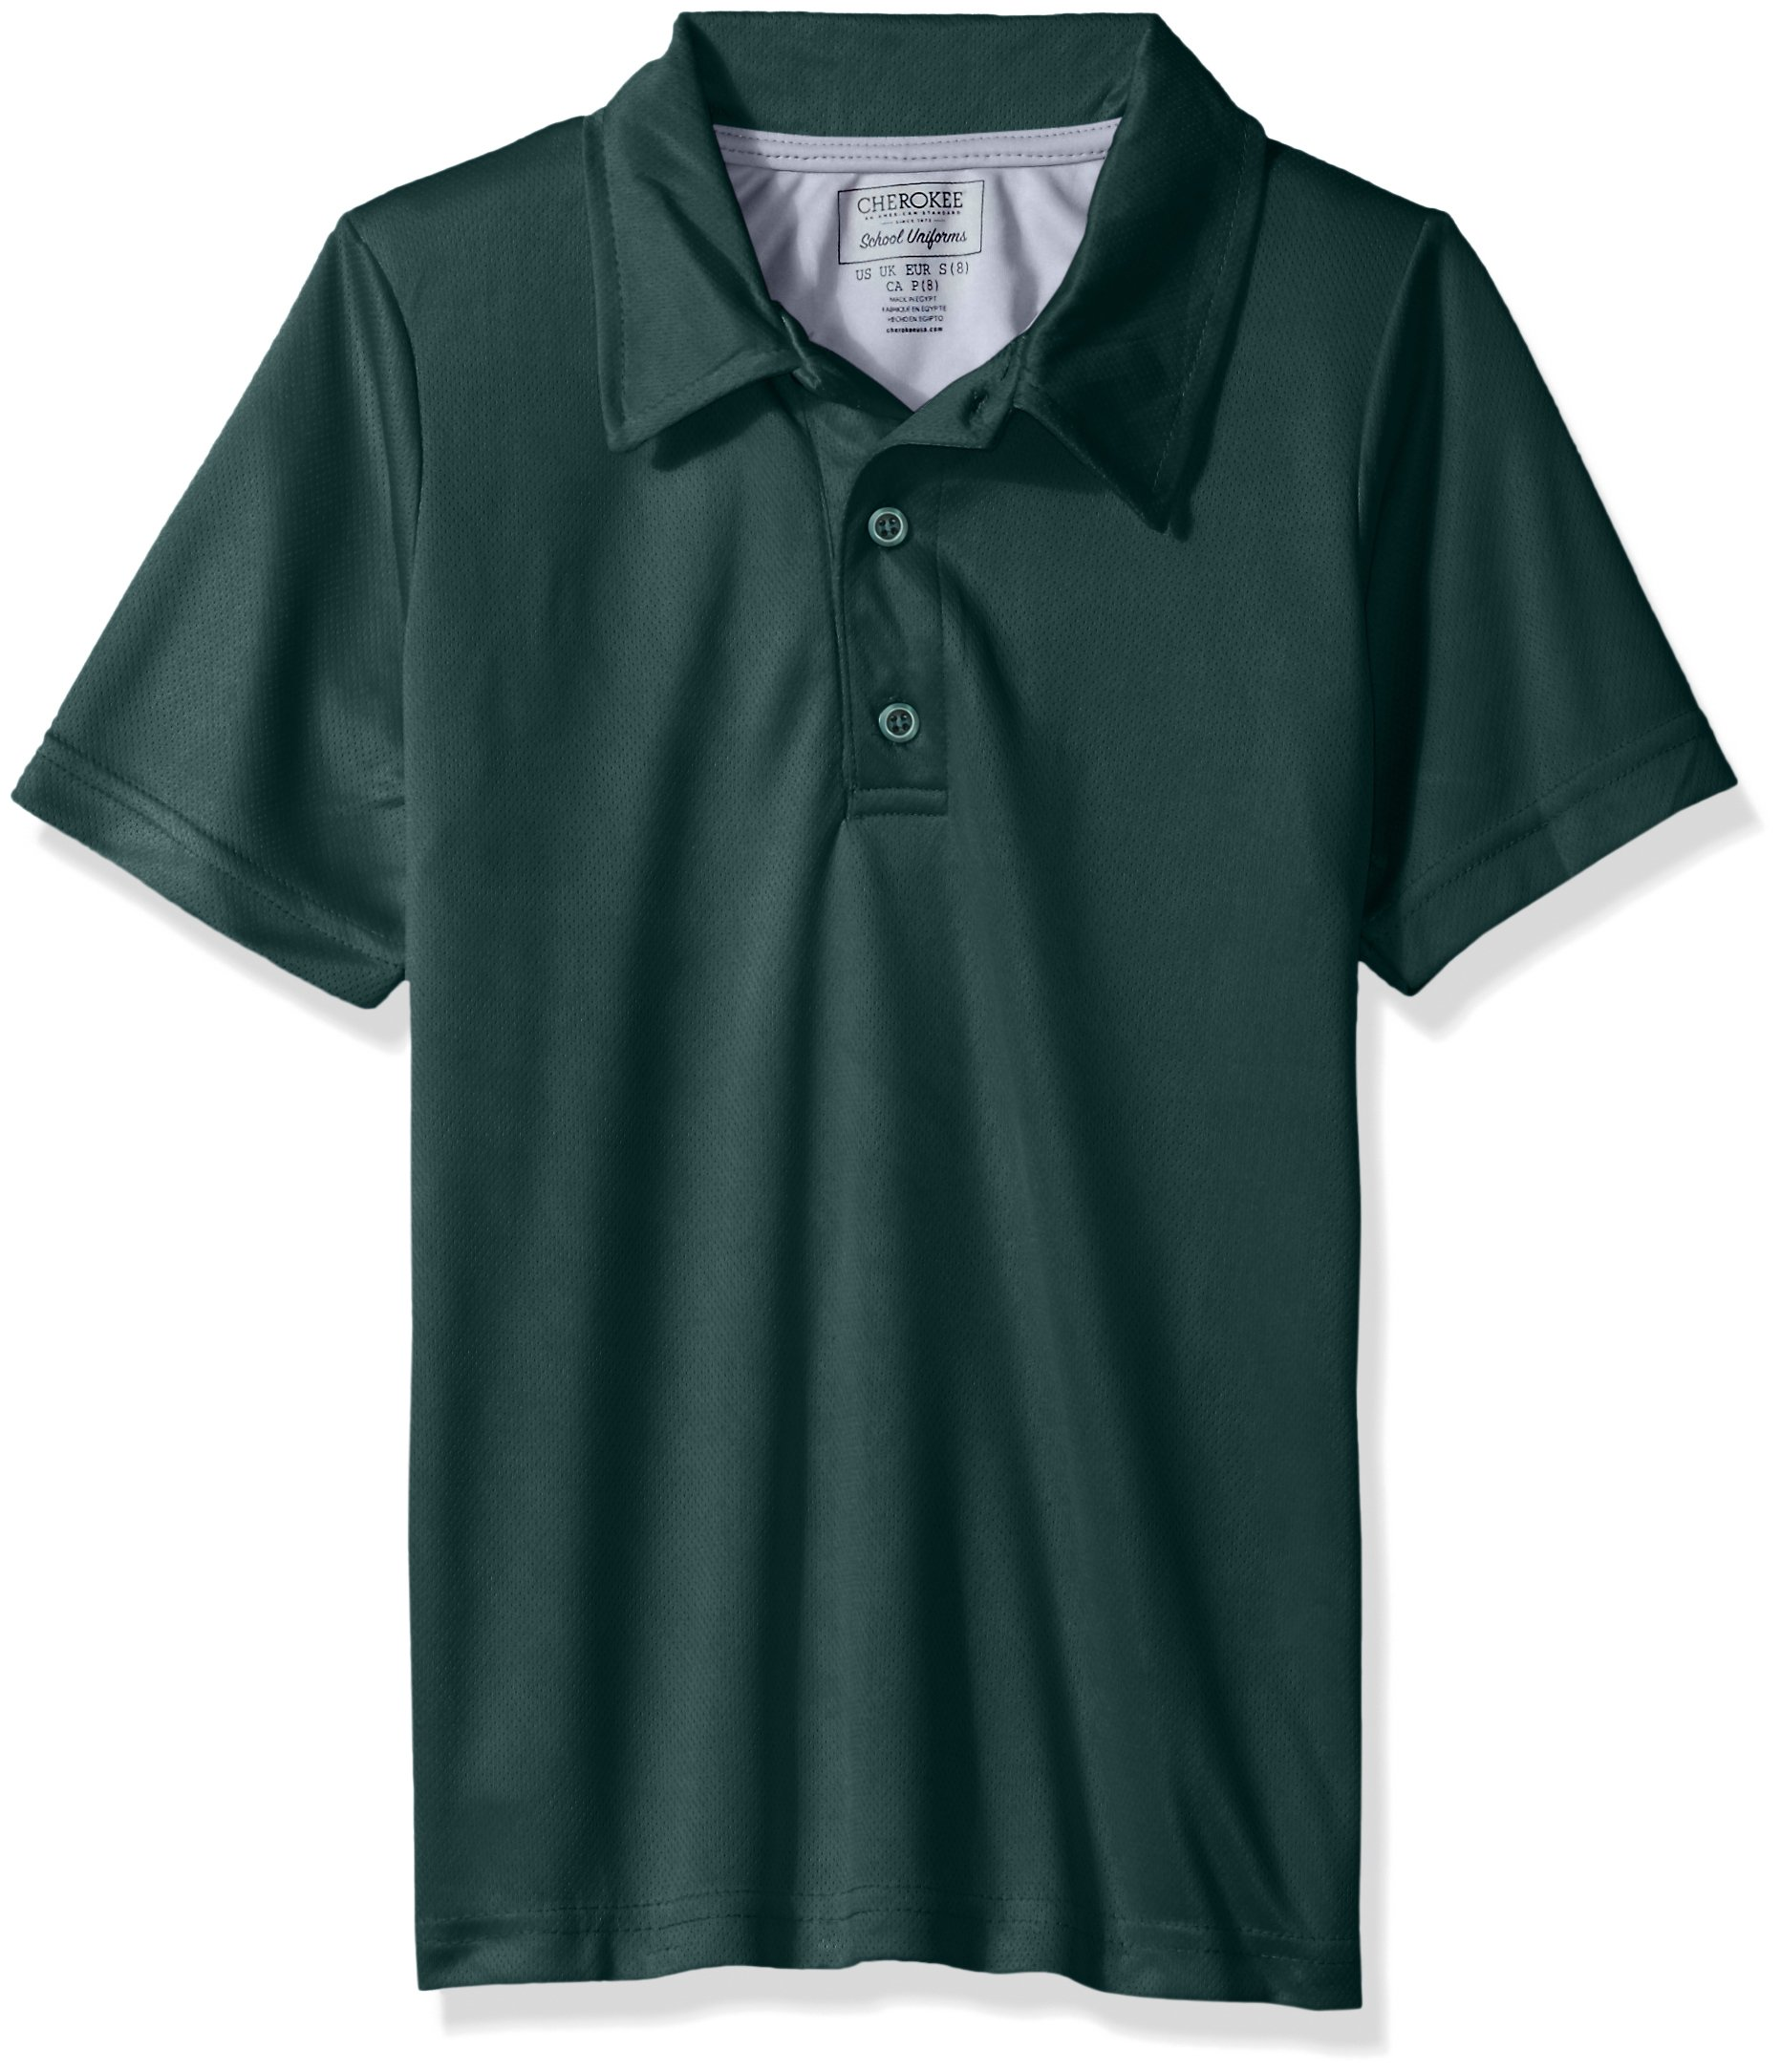 Cherokee Boys' Uniform Short Sleeve Performance Polo Shirt